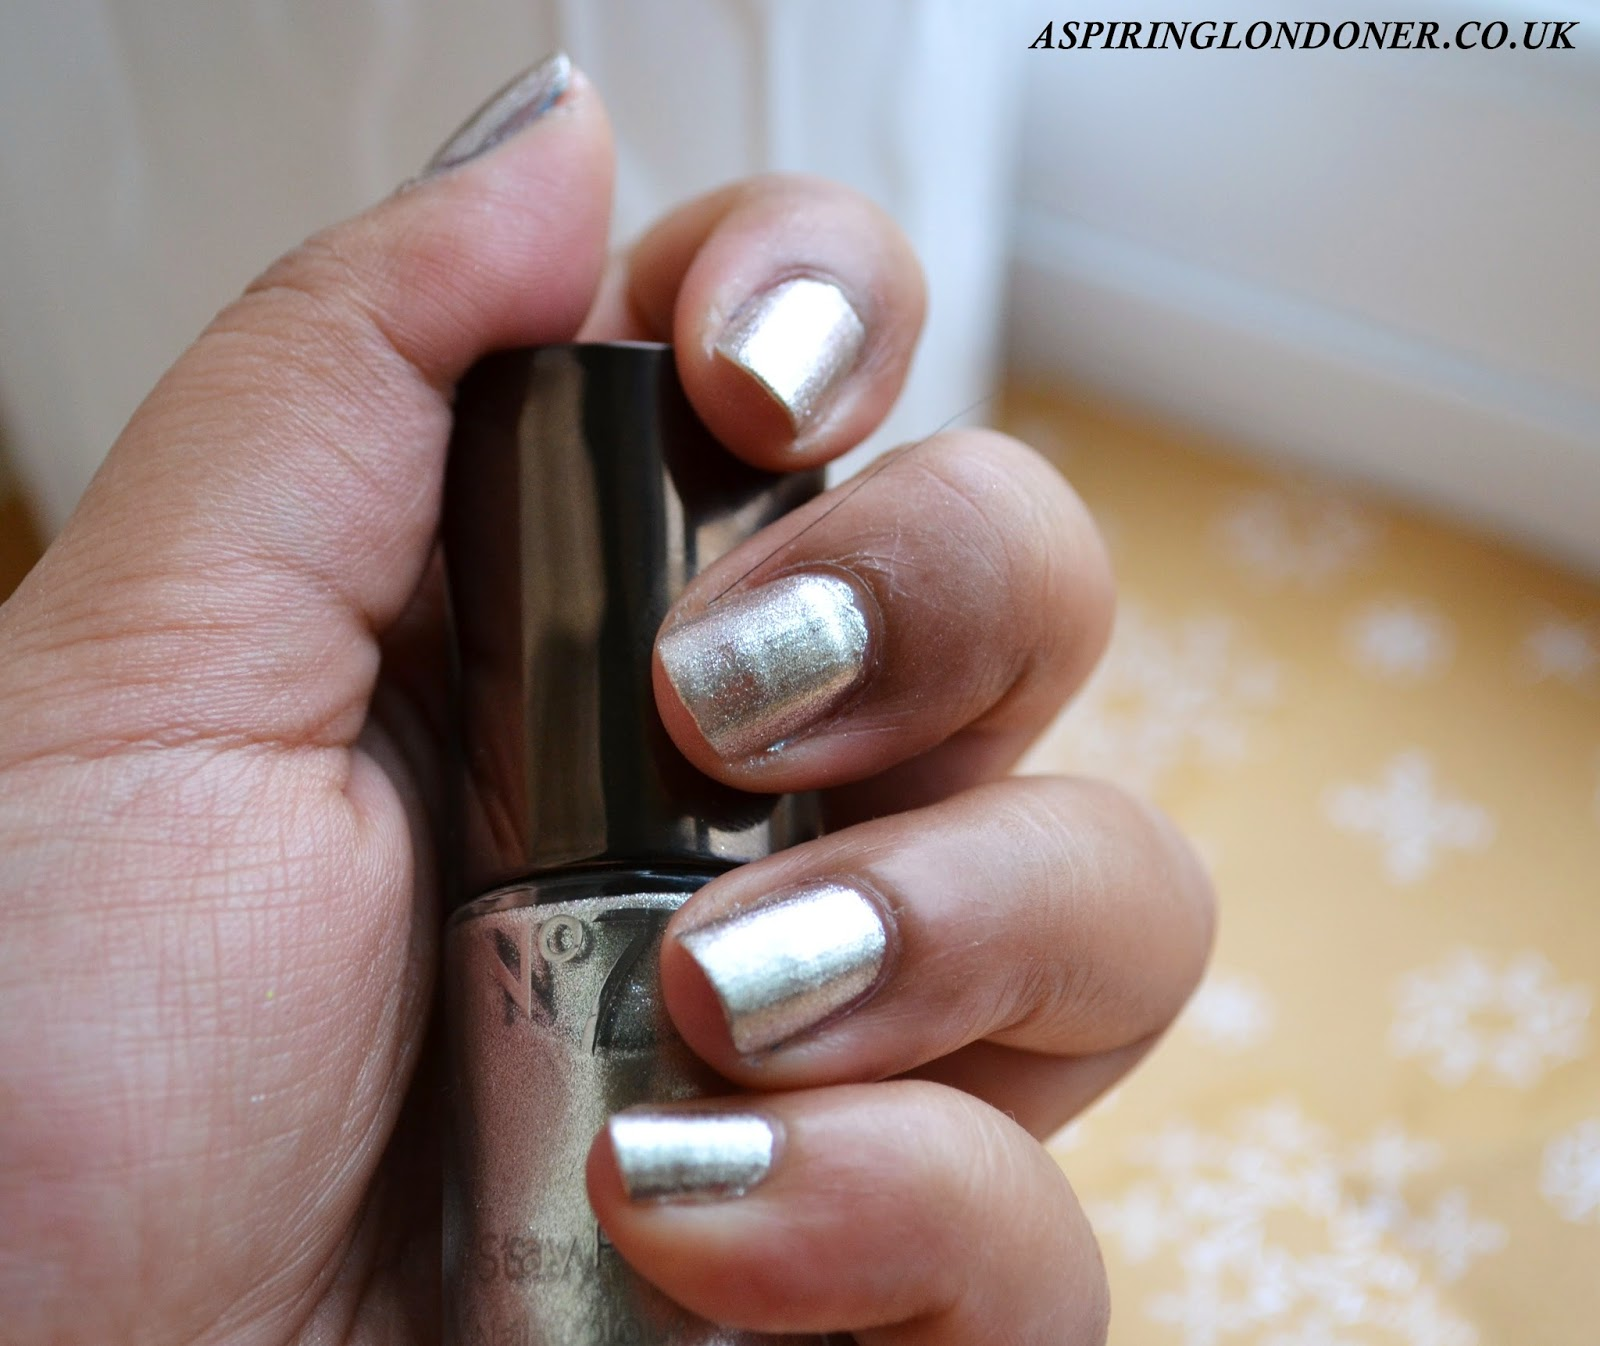 No7 Gel Look Shine Nail Polish Exquisite Gold Swatch & Review - Aspiring Londoner